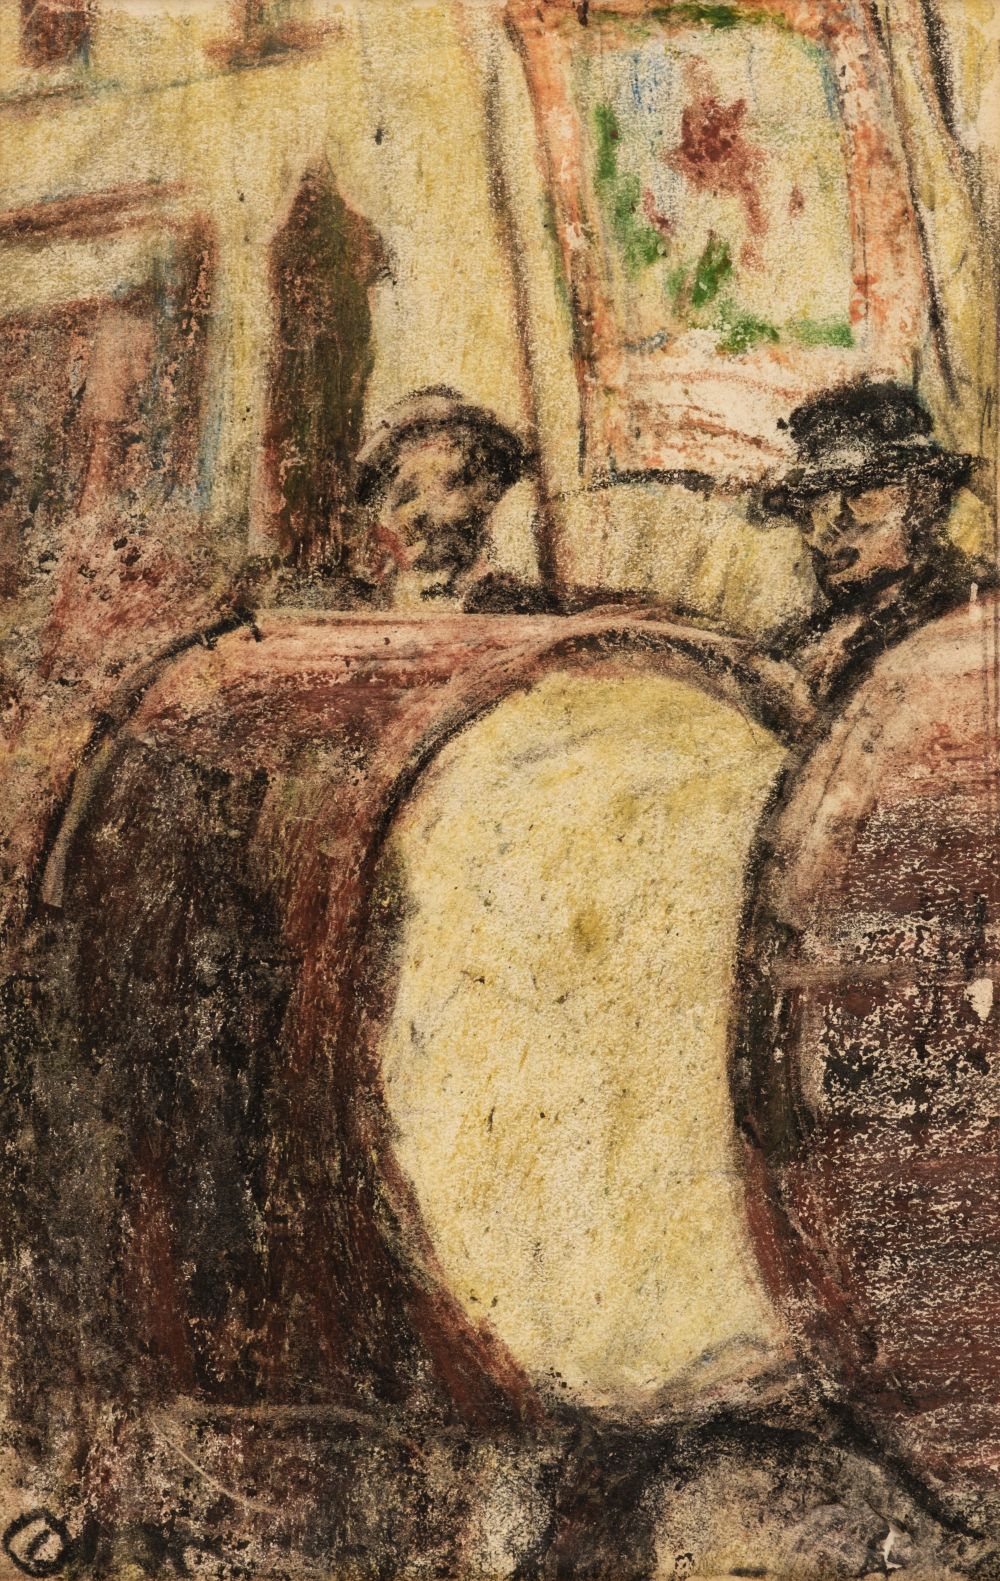 ARR * § Conor (William, 1881-1968). The Lambeg Drums